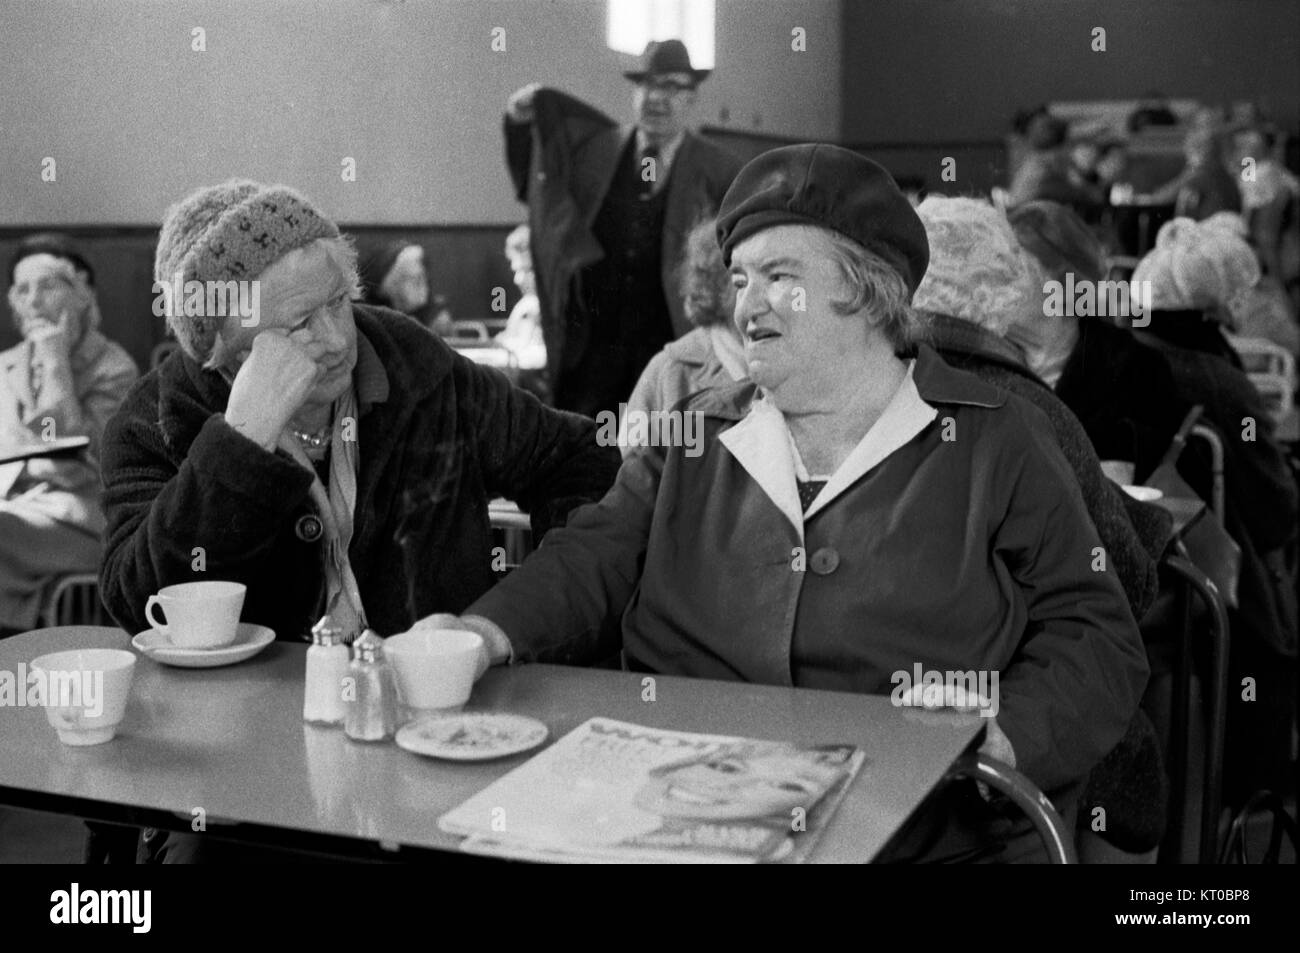 Poverty East End Tower hamlets London 1970s, Lunch Club, for a few shillings elderly residents could buy a meal - Stock Image